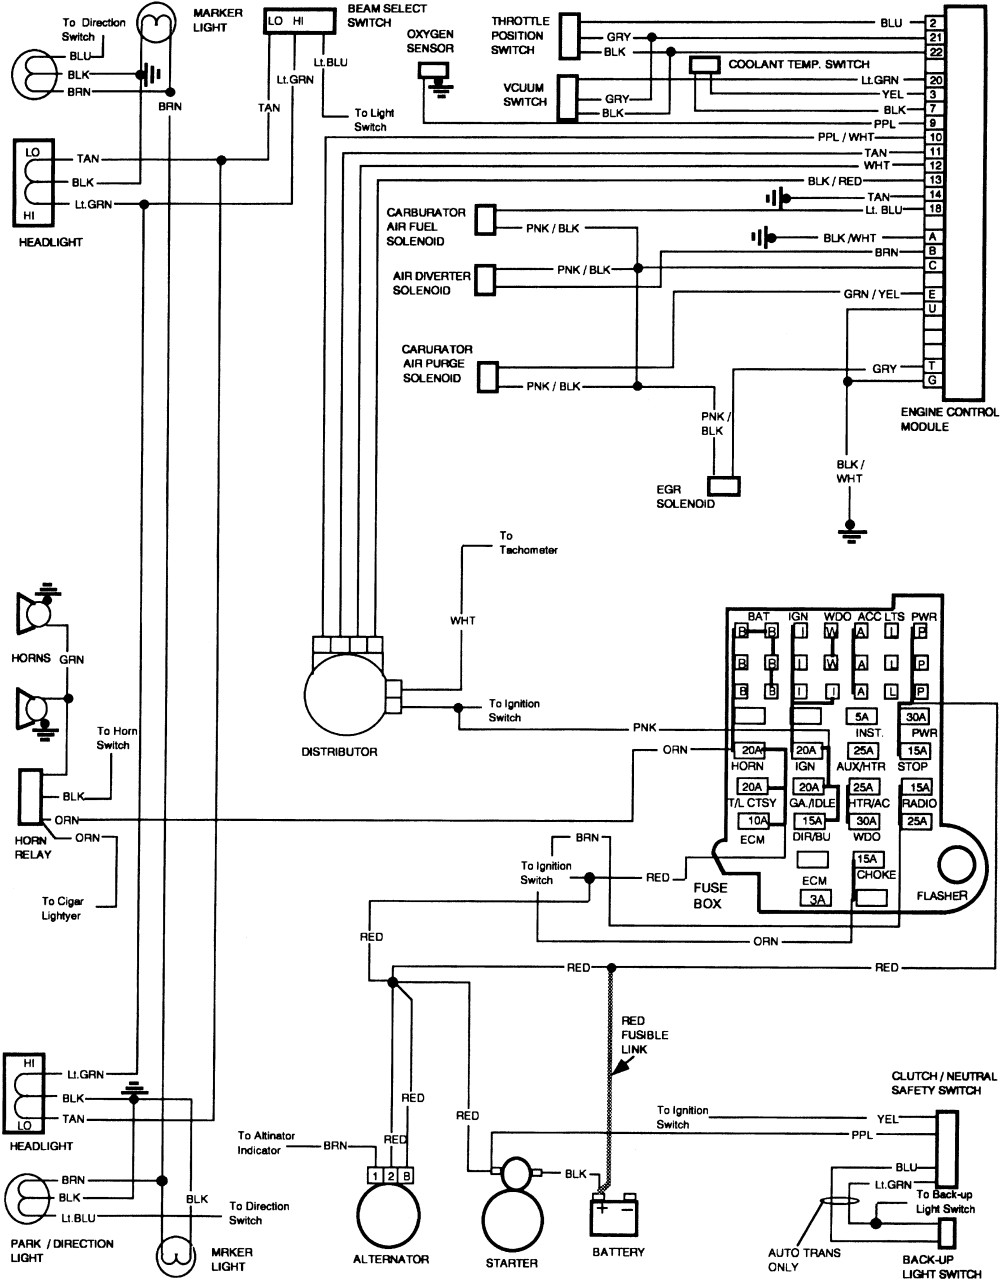 Astonishing Chevy Luv Ignition Wiring Wiring Diagram Wiring Cloud Onicaxeromohammedshrineorg